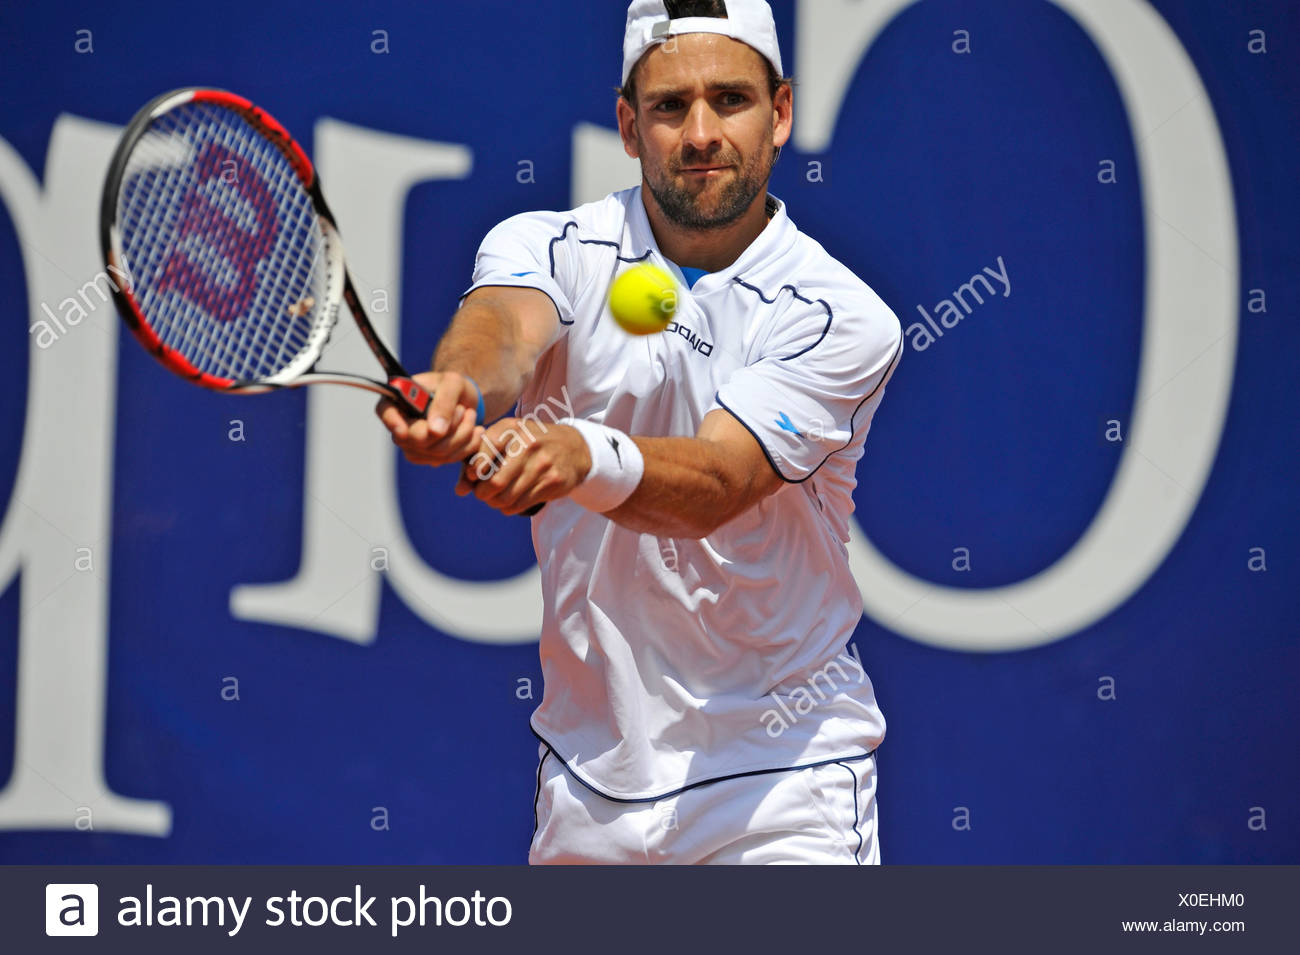 Nicolas Kiefer, Germany, Mercedes Cup Stuttgart 2009, Baden-Wuerttemberg, Germany, Europe - Stock Image